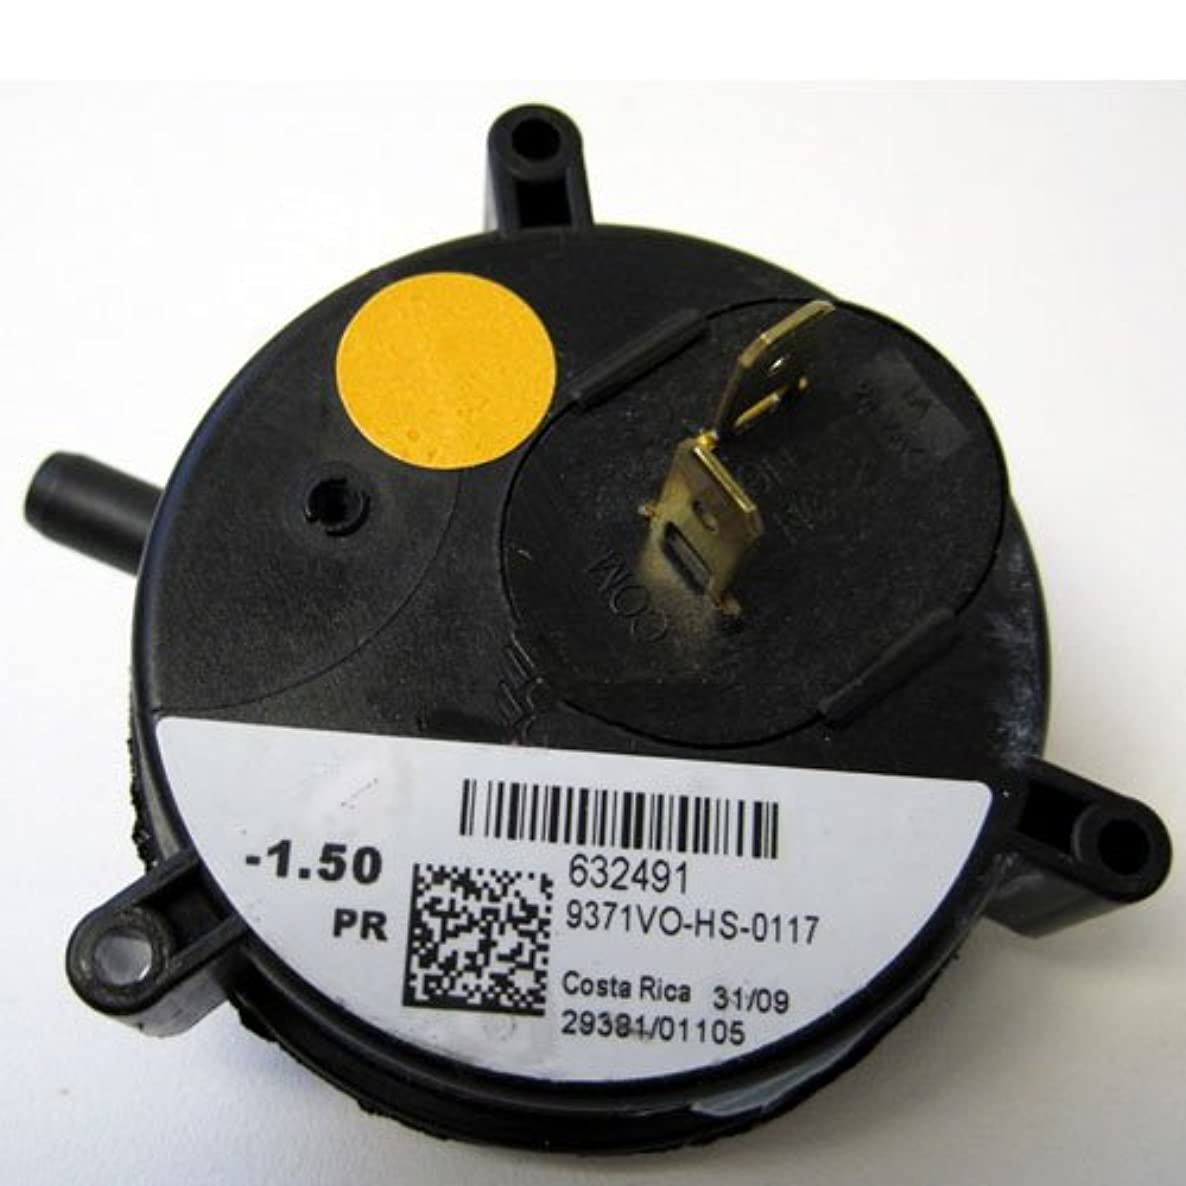 632491 - Nordyne Furnace Vent Air Pressure Switch - OEM Replacement